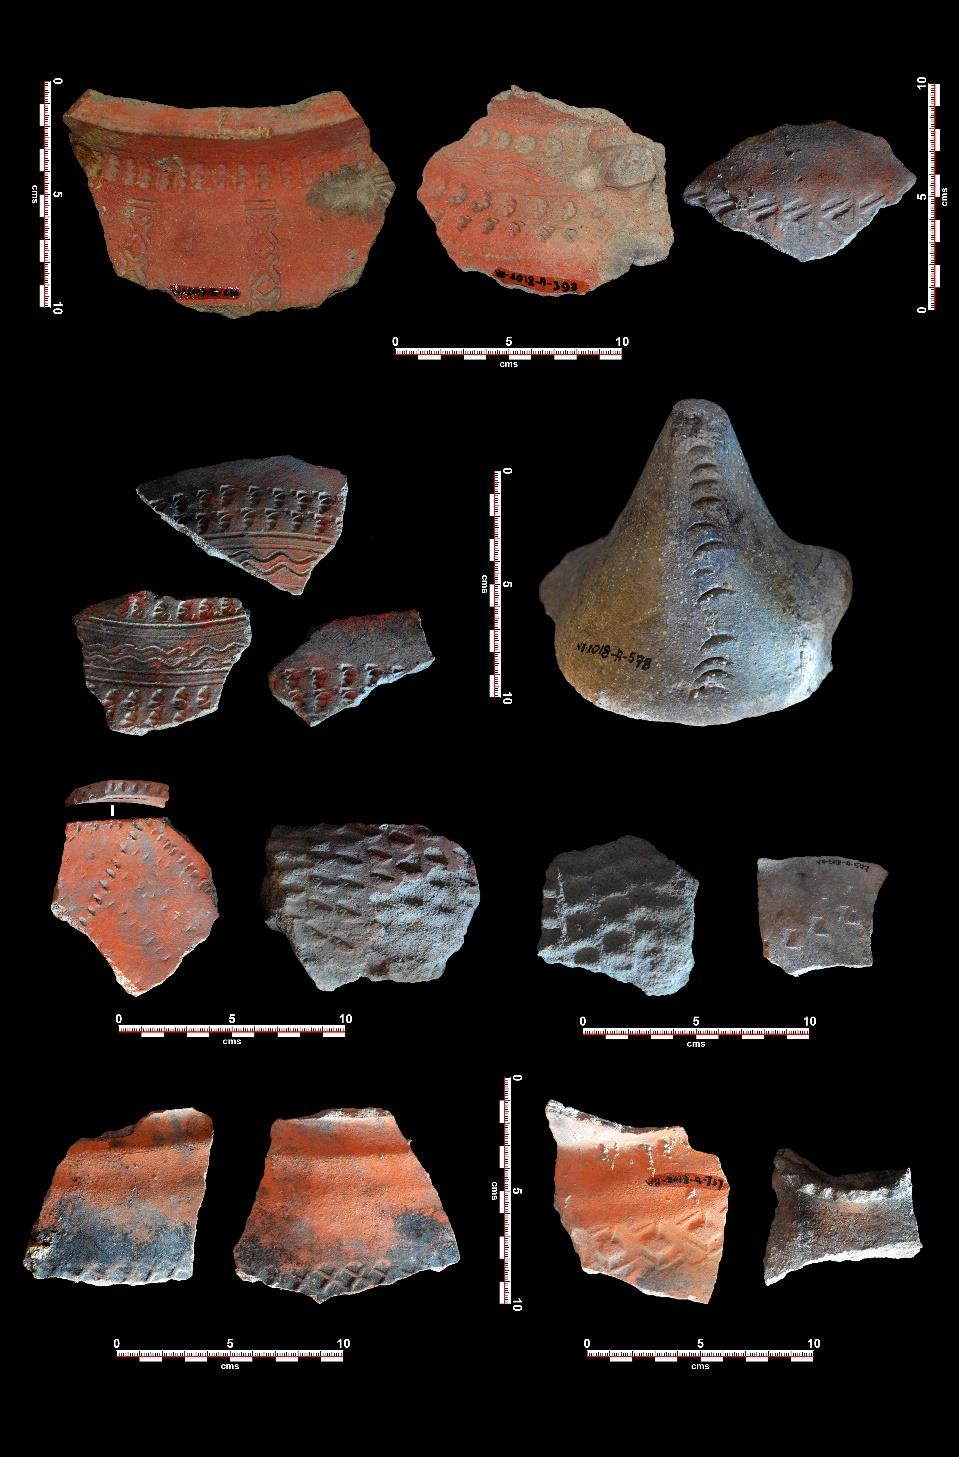 Stamped and incised high-fired ceramics from 17th and 18th century deposits at Jesuit House. Source: Tiauzon.